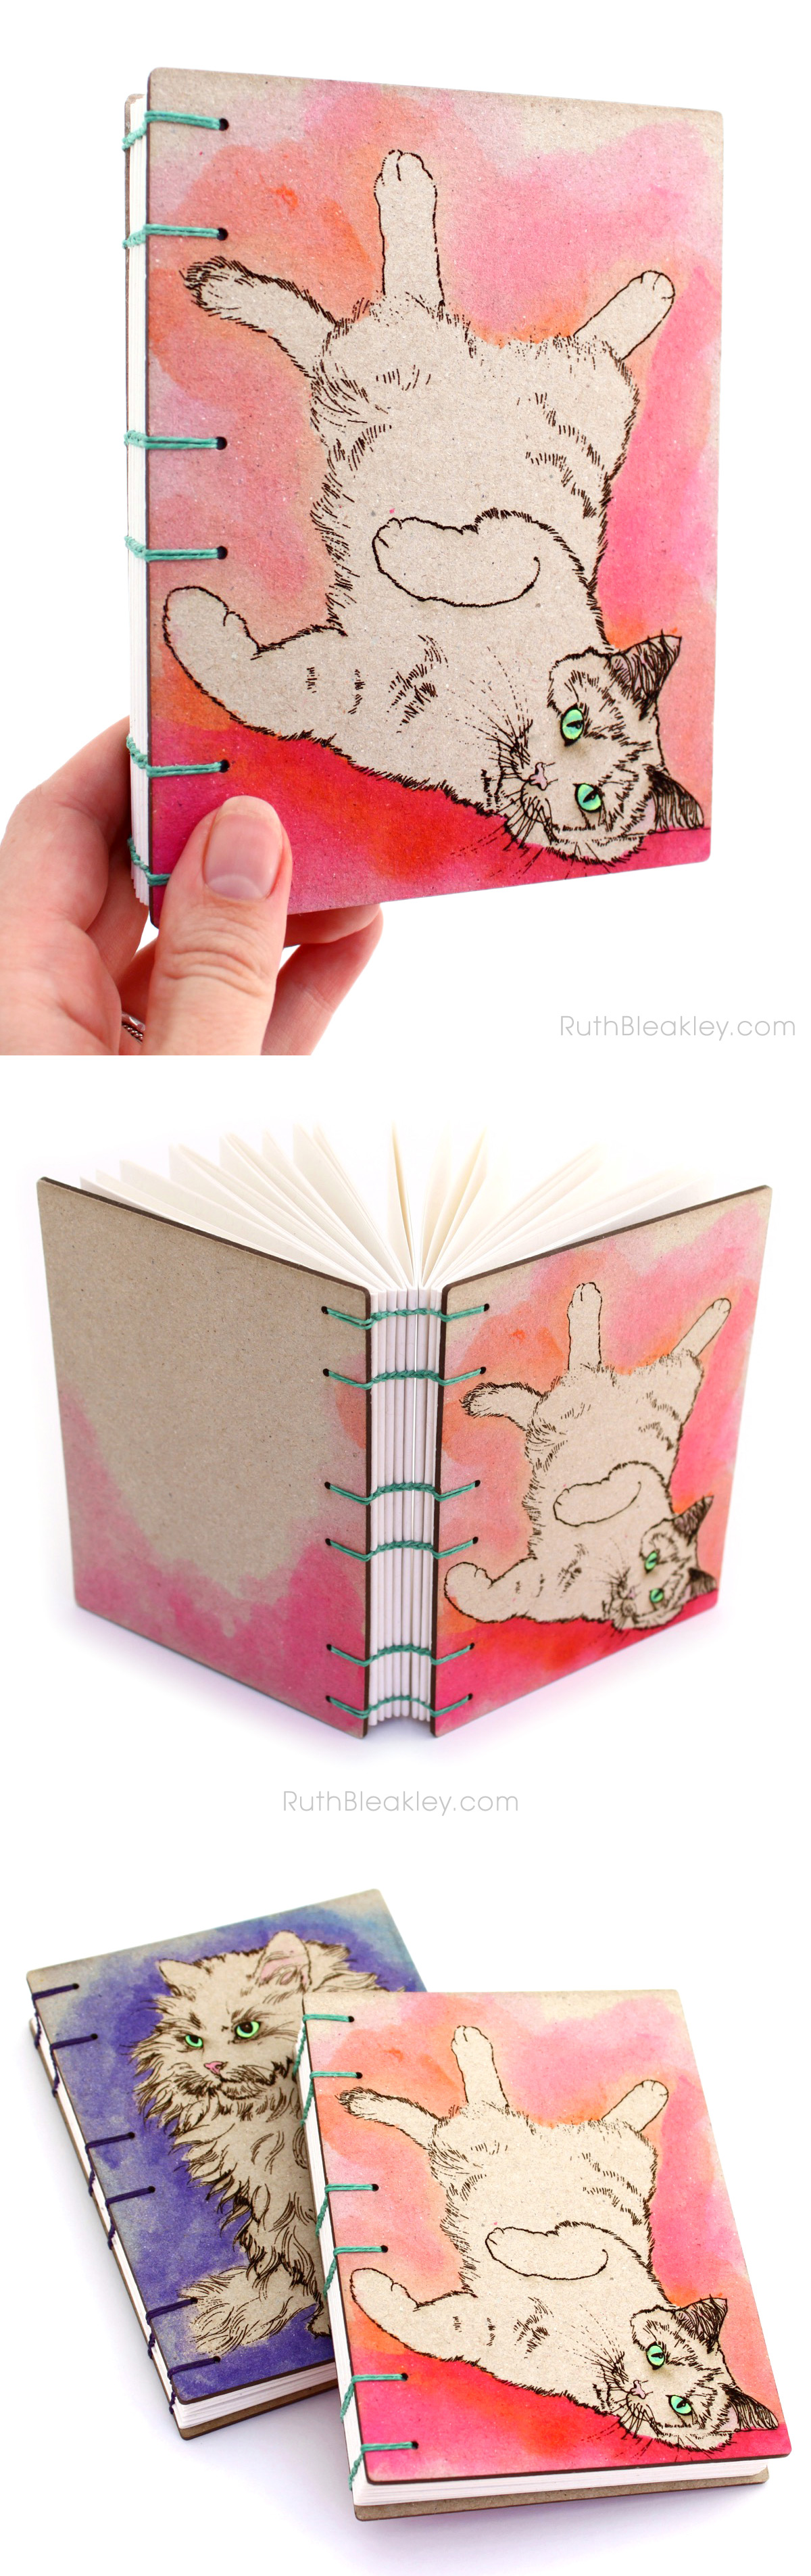 Pink and Orange Cat Journal handmade by Ruth Bleakley are perfect gifts for cat lovers